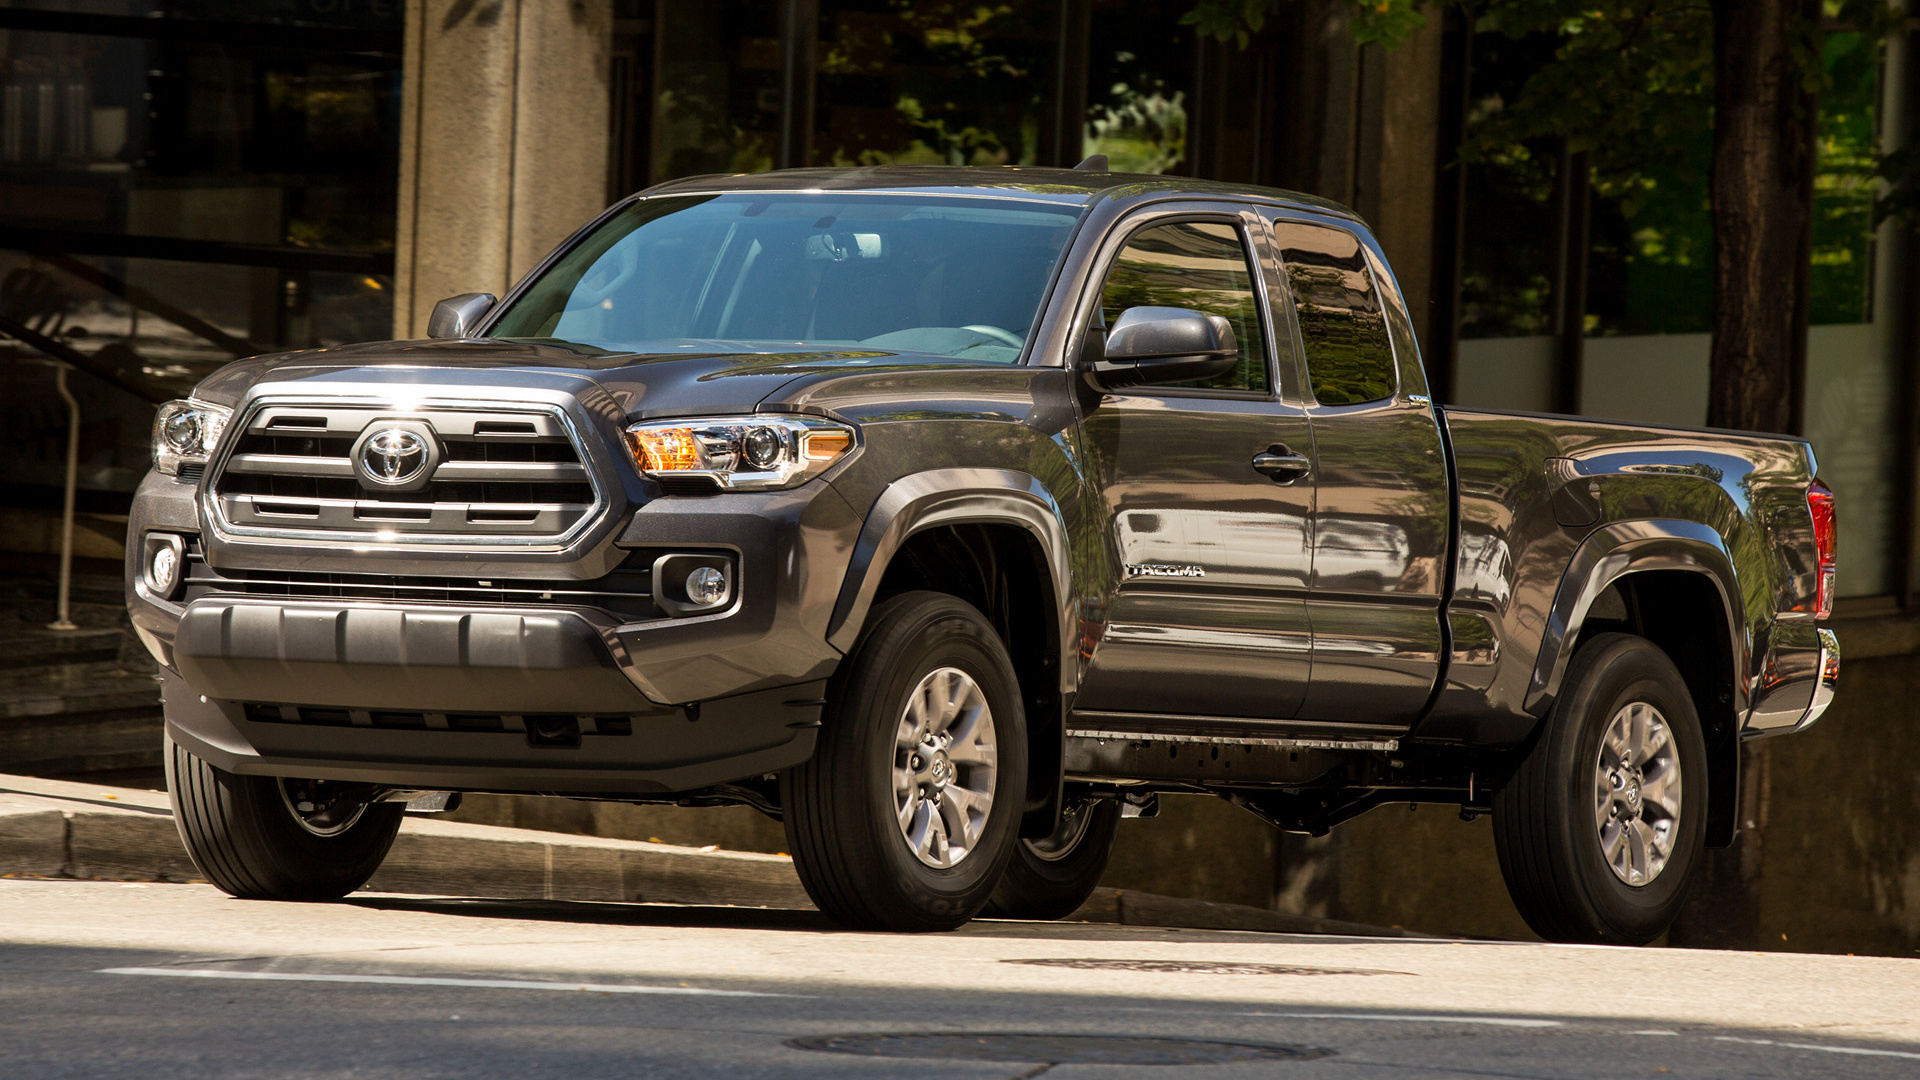 2016 Toyota Tacoma Sr5 >> 2016 Toyota Tacoma SR5 Access Cab - Wallpapers and HD Images | Car Pixel